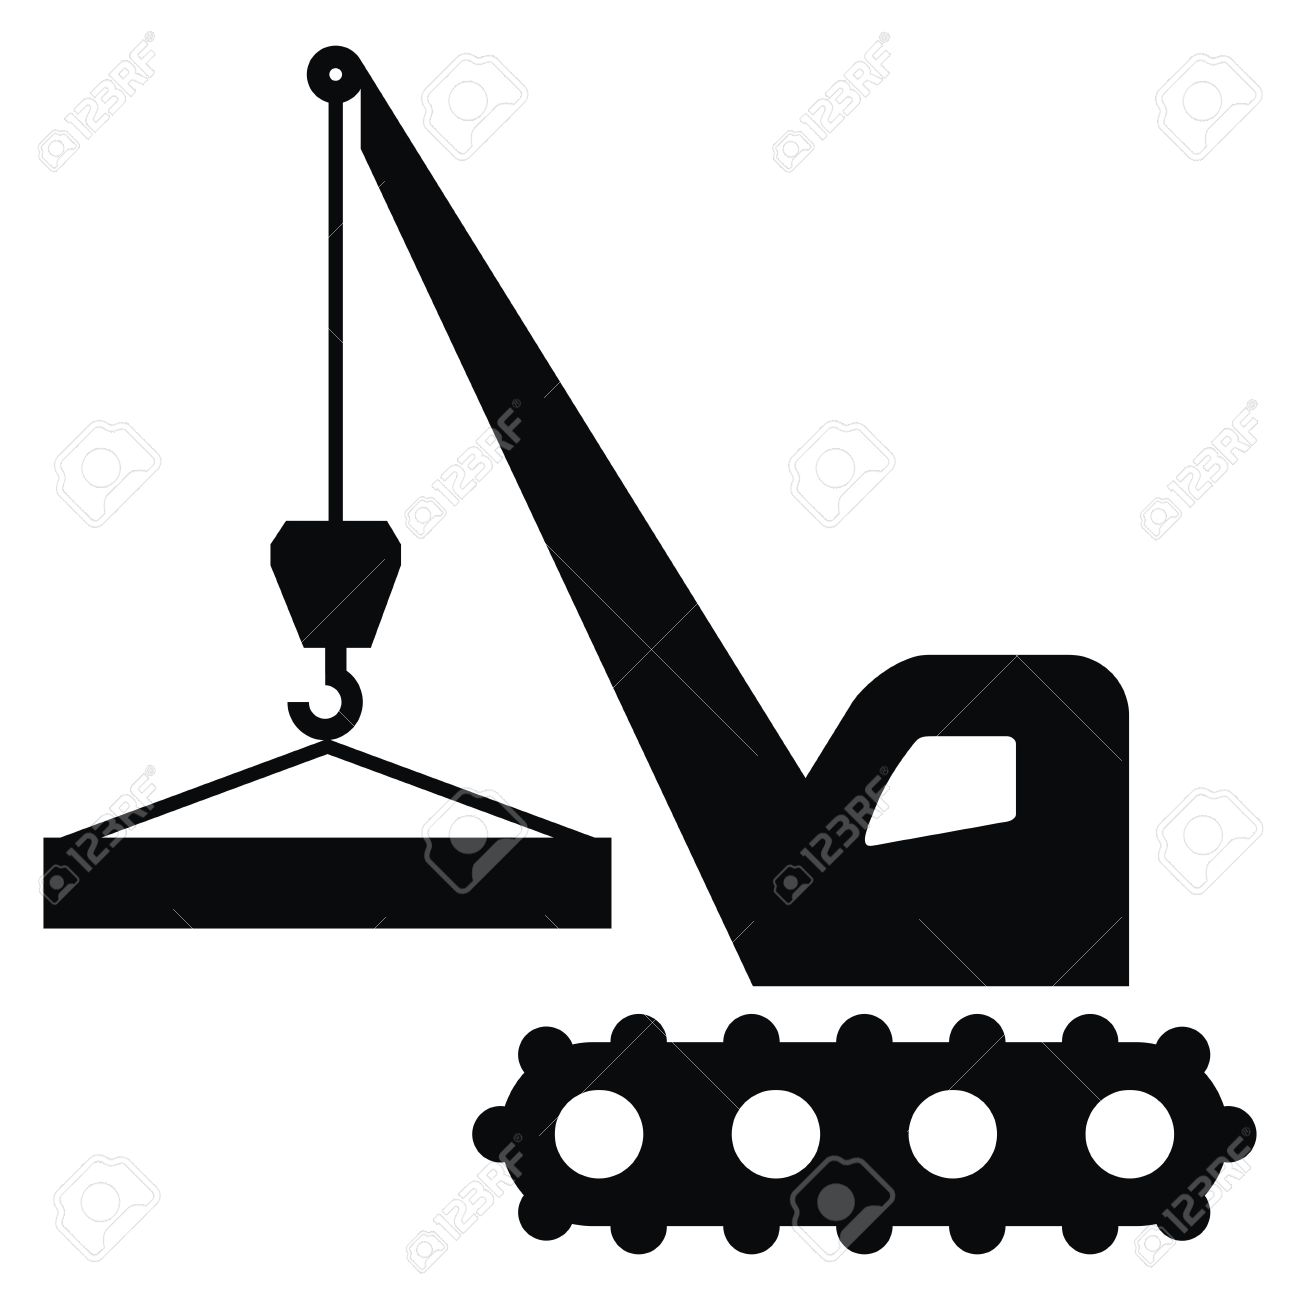 1300x1300 Crane Icon, Black Silhouette, Handling Of Load. Royalty Free